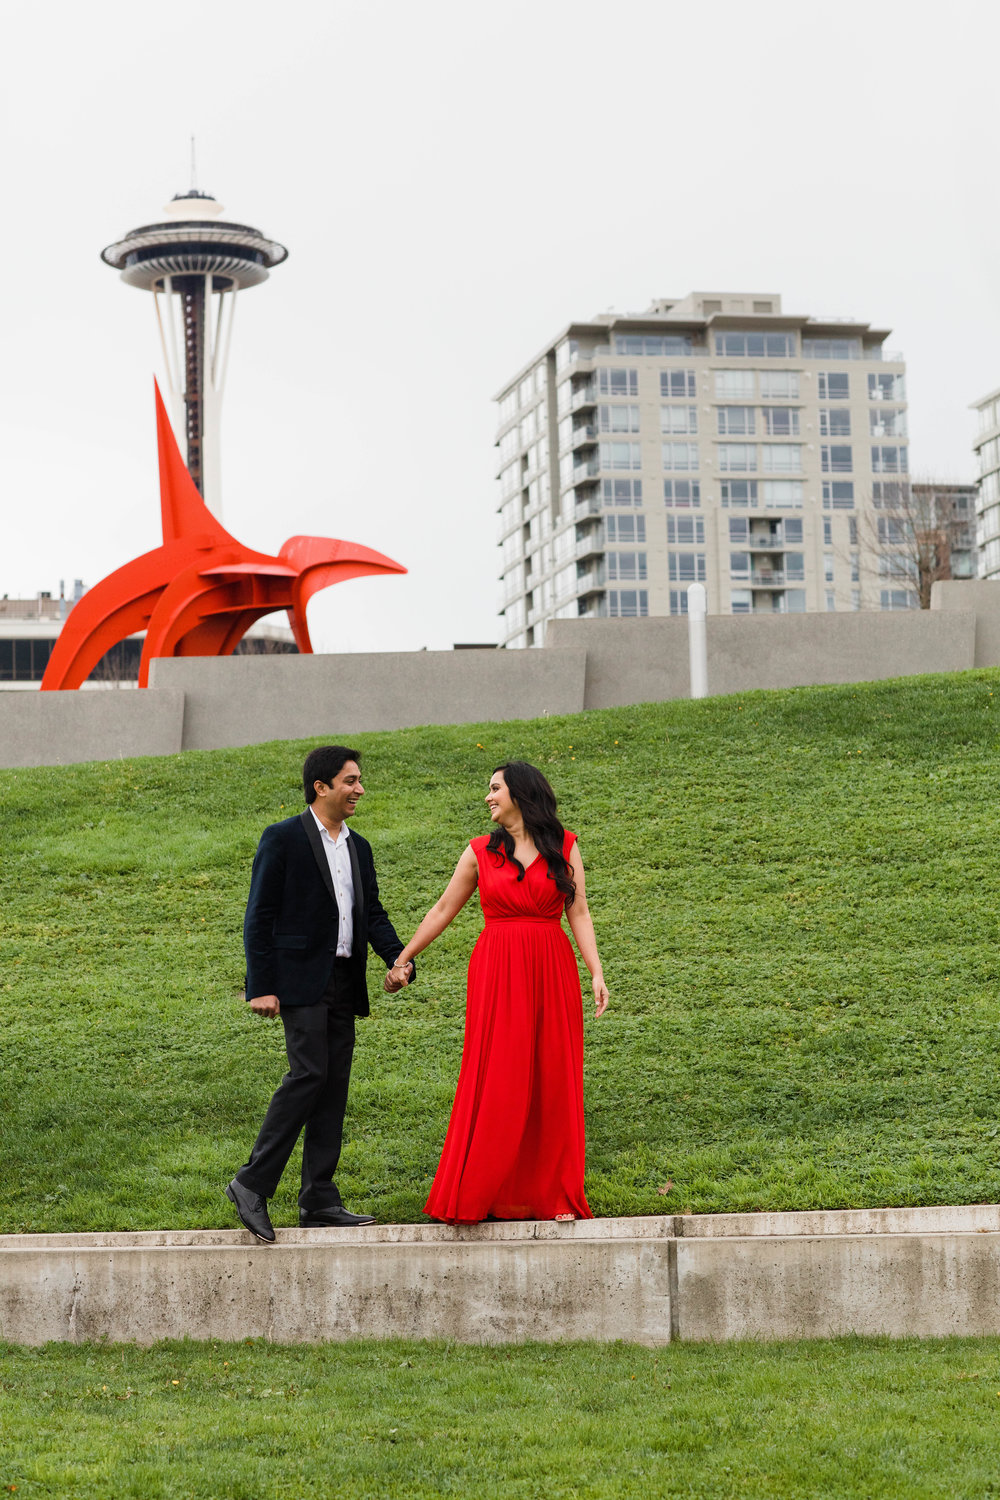 Sushat+Nancy_Engagement_Pioneer+Square_Sculpture+Park_Seattle_Oct2016_APW363.jpg